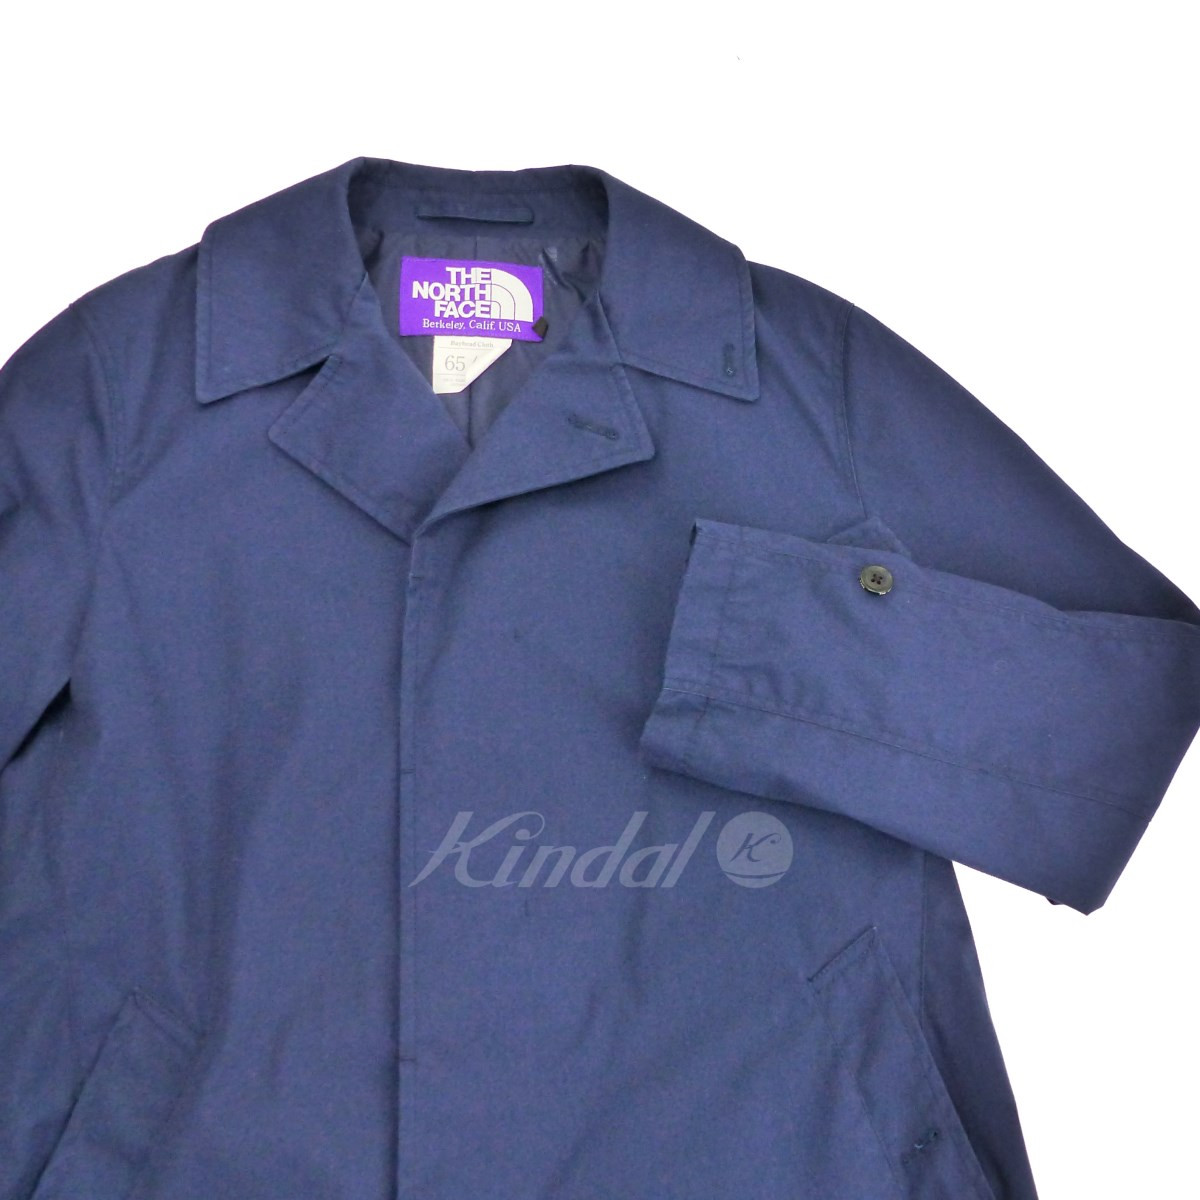 0ea6b0f12 THE NORTH FACE PURPLE LABEL 2017SS BEAMS comment convertible collar coat  navy size: M (the North Face purple label)